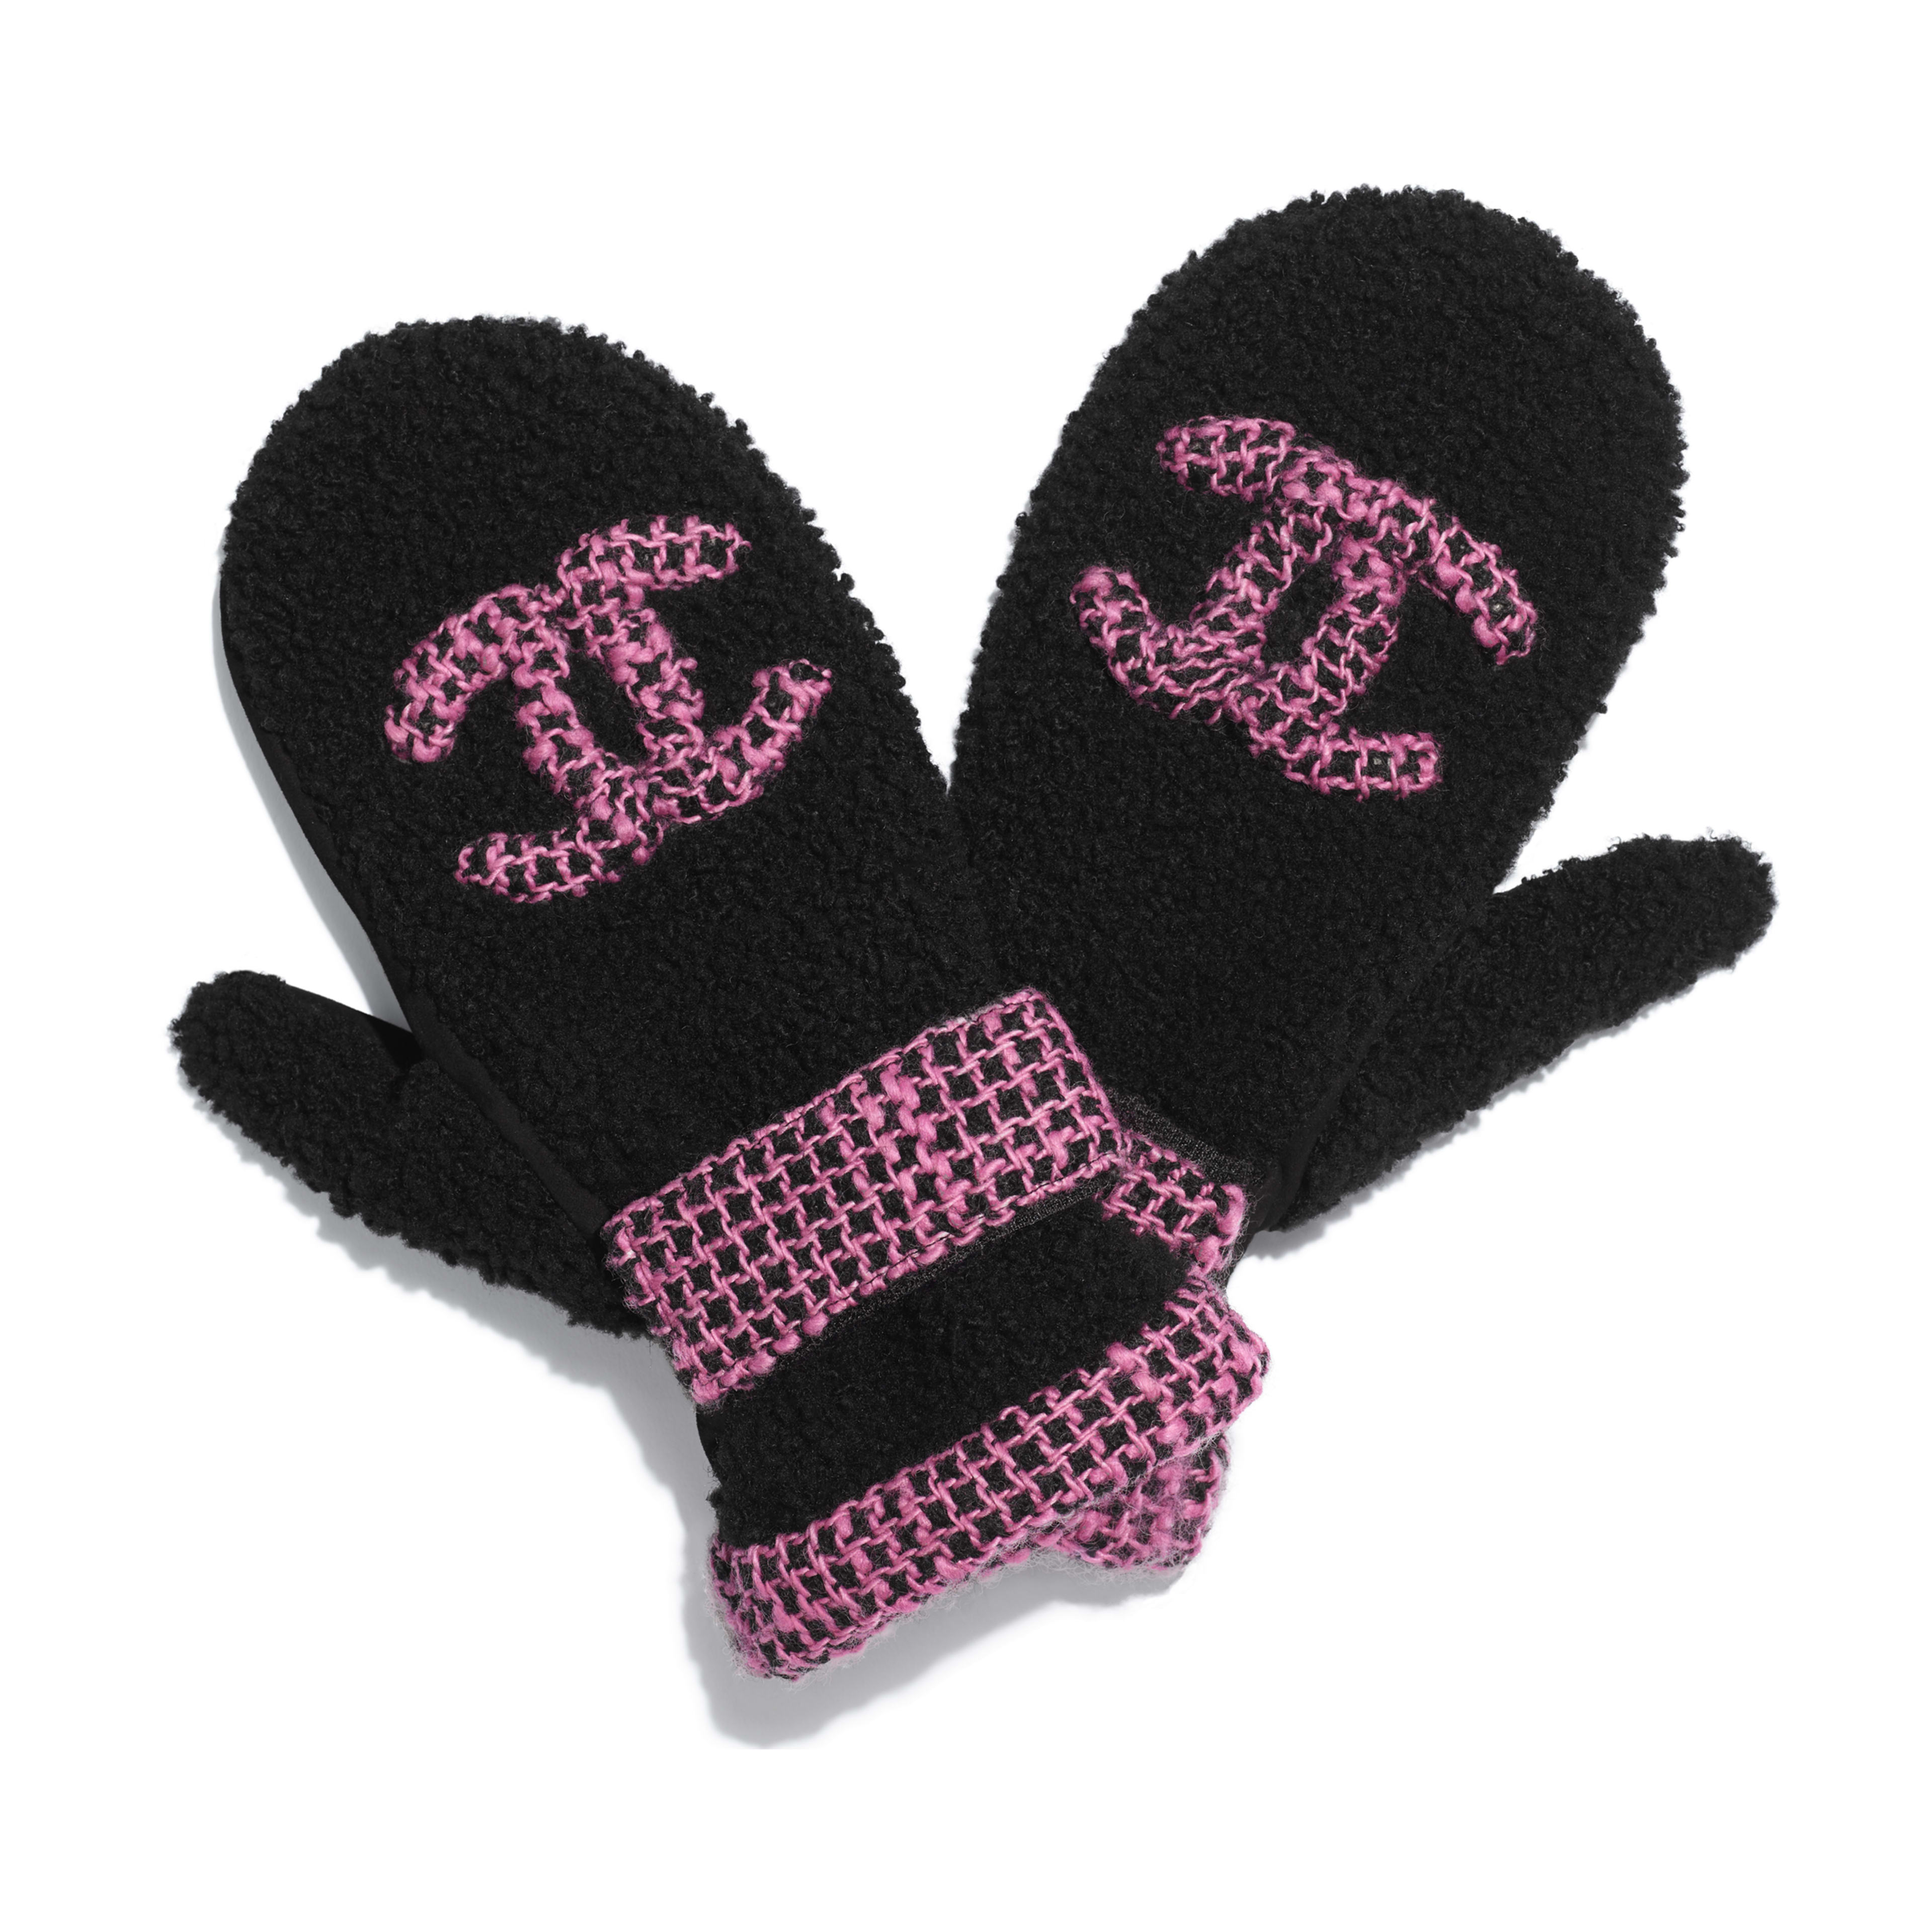 Mittens - Black & Pink - Shearling & Tweed - Default view - see full sized version